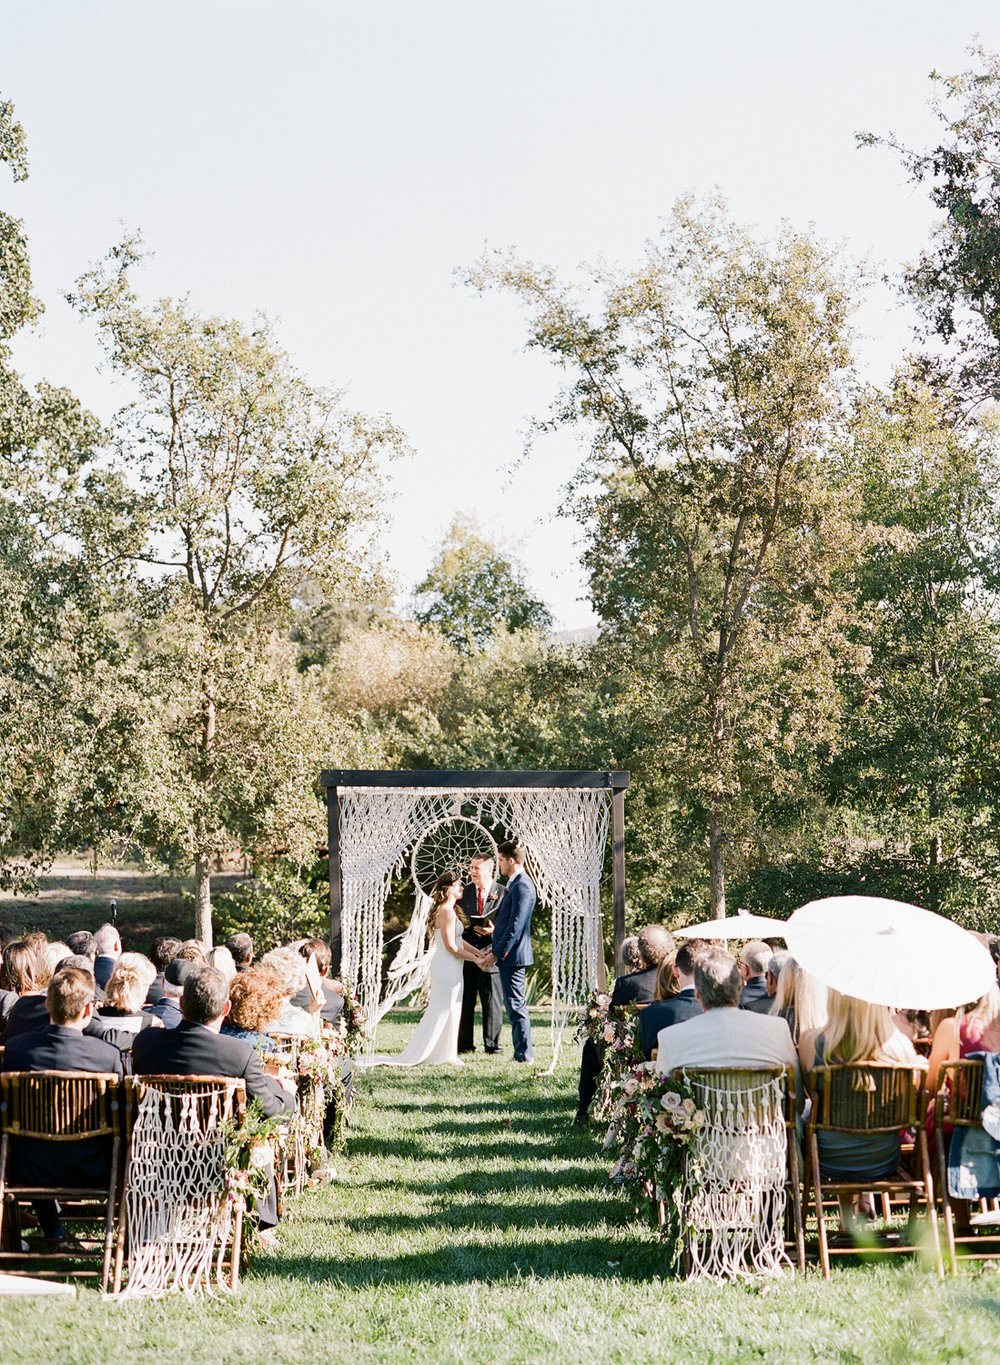 The bride and groom say their vows under a macrame-draped arbor in front of a dreamcatcher; Sylvie Gil Photography